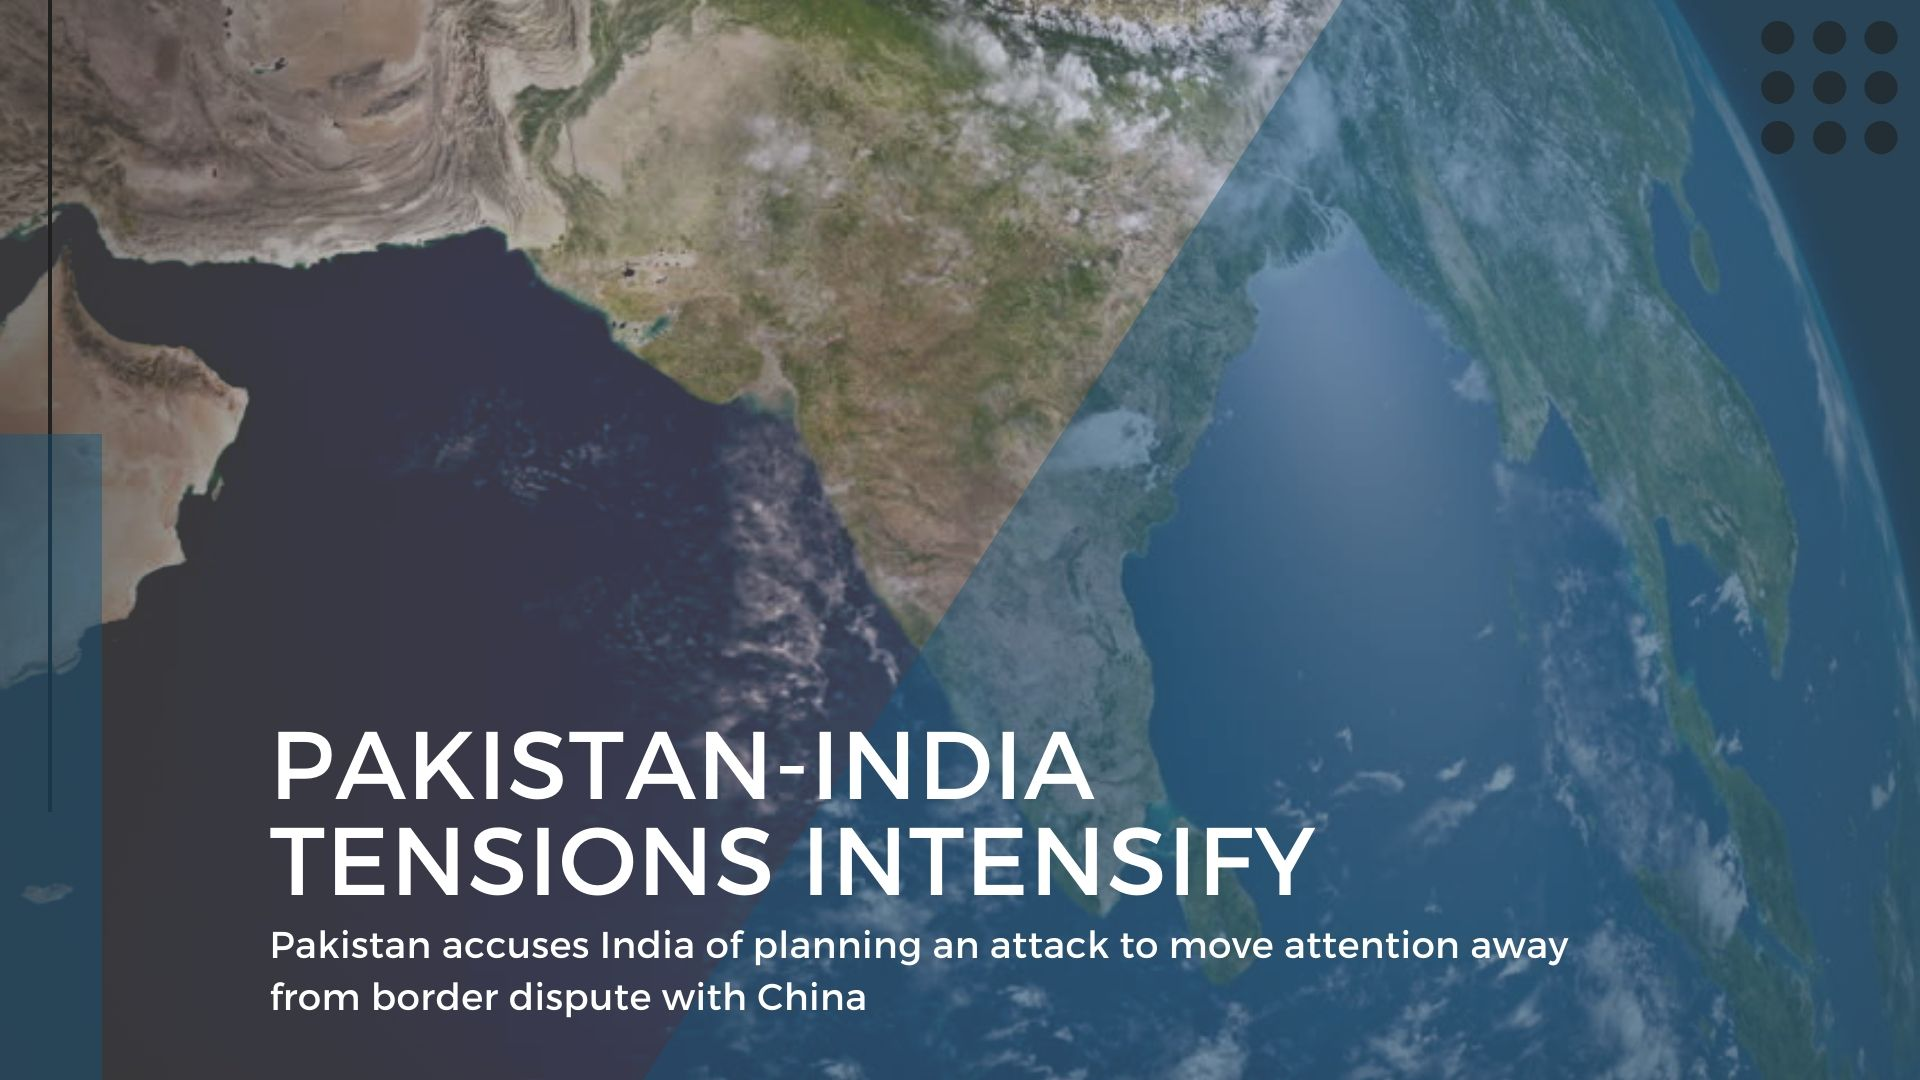 Pakistan accuses India of planning an attack to move attention away from border dispute with China